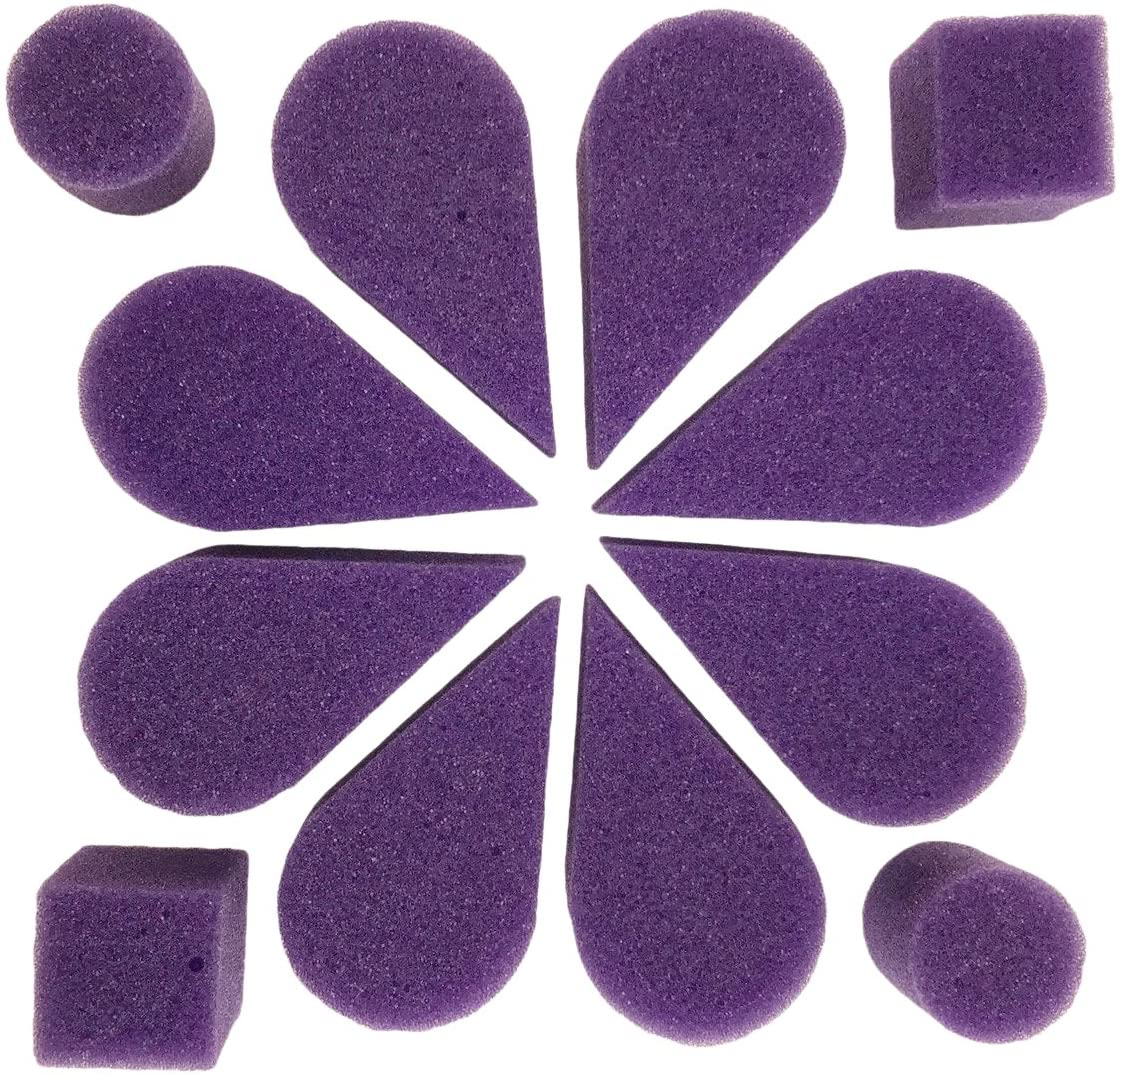 Ruby Red Paint, Inc. SPOPETPU Face Paint with Petal Sponge, 8 Pack, Purple, 2 Piece